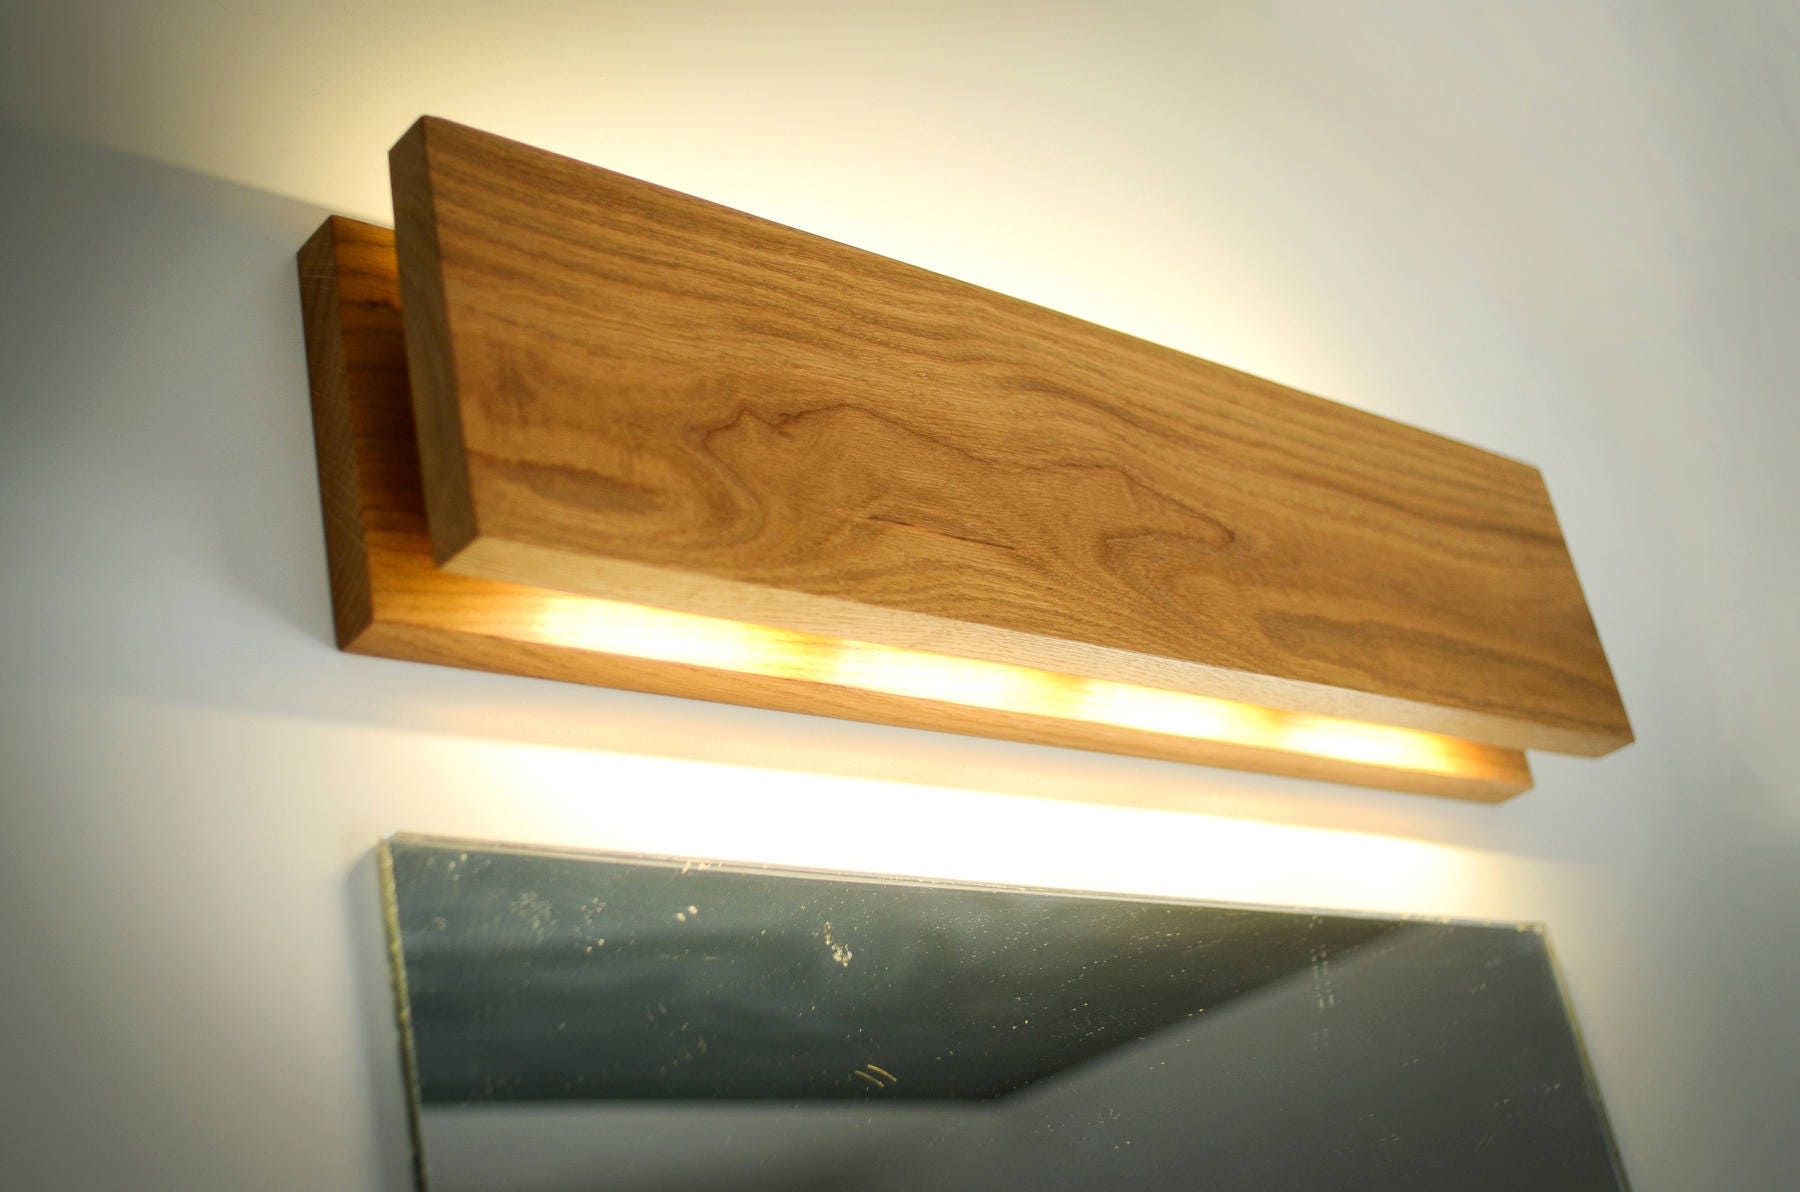 Wall Lamps Etsy : wall lamp SC90 handmade. oak. sconce. wooden sconce. wood